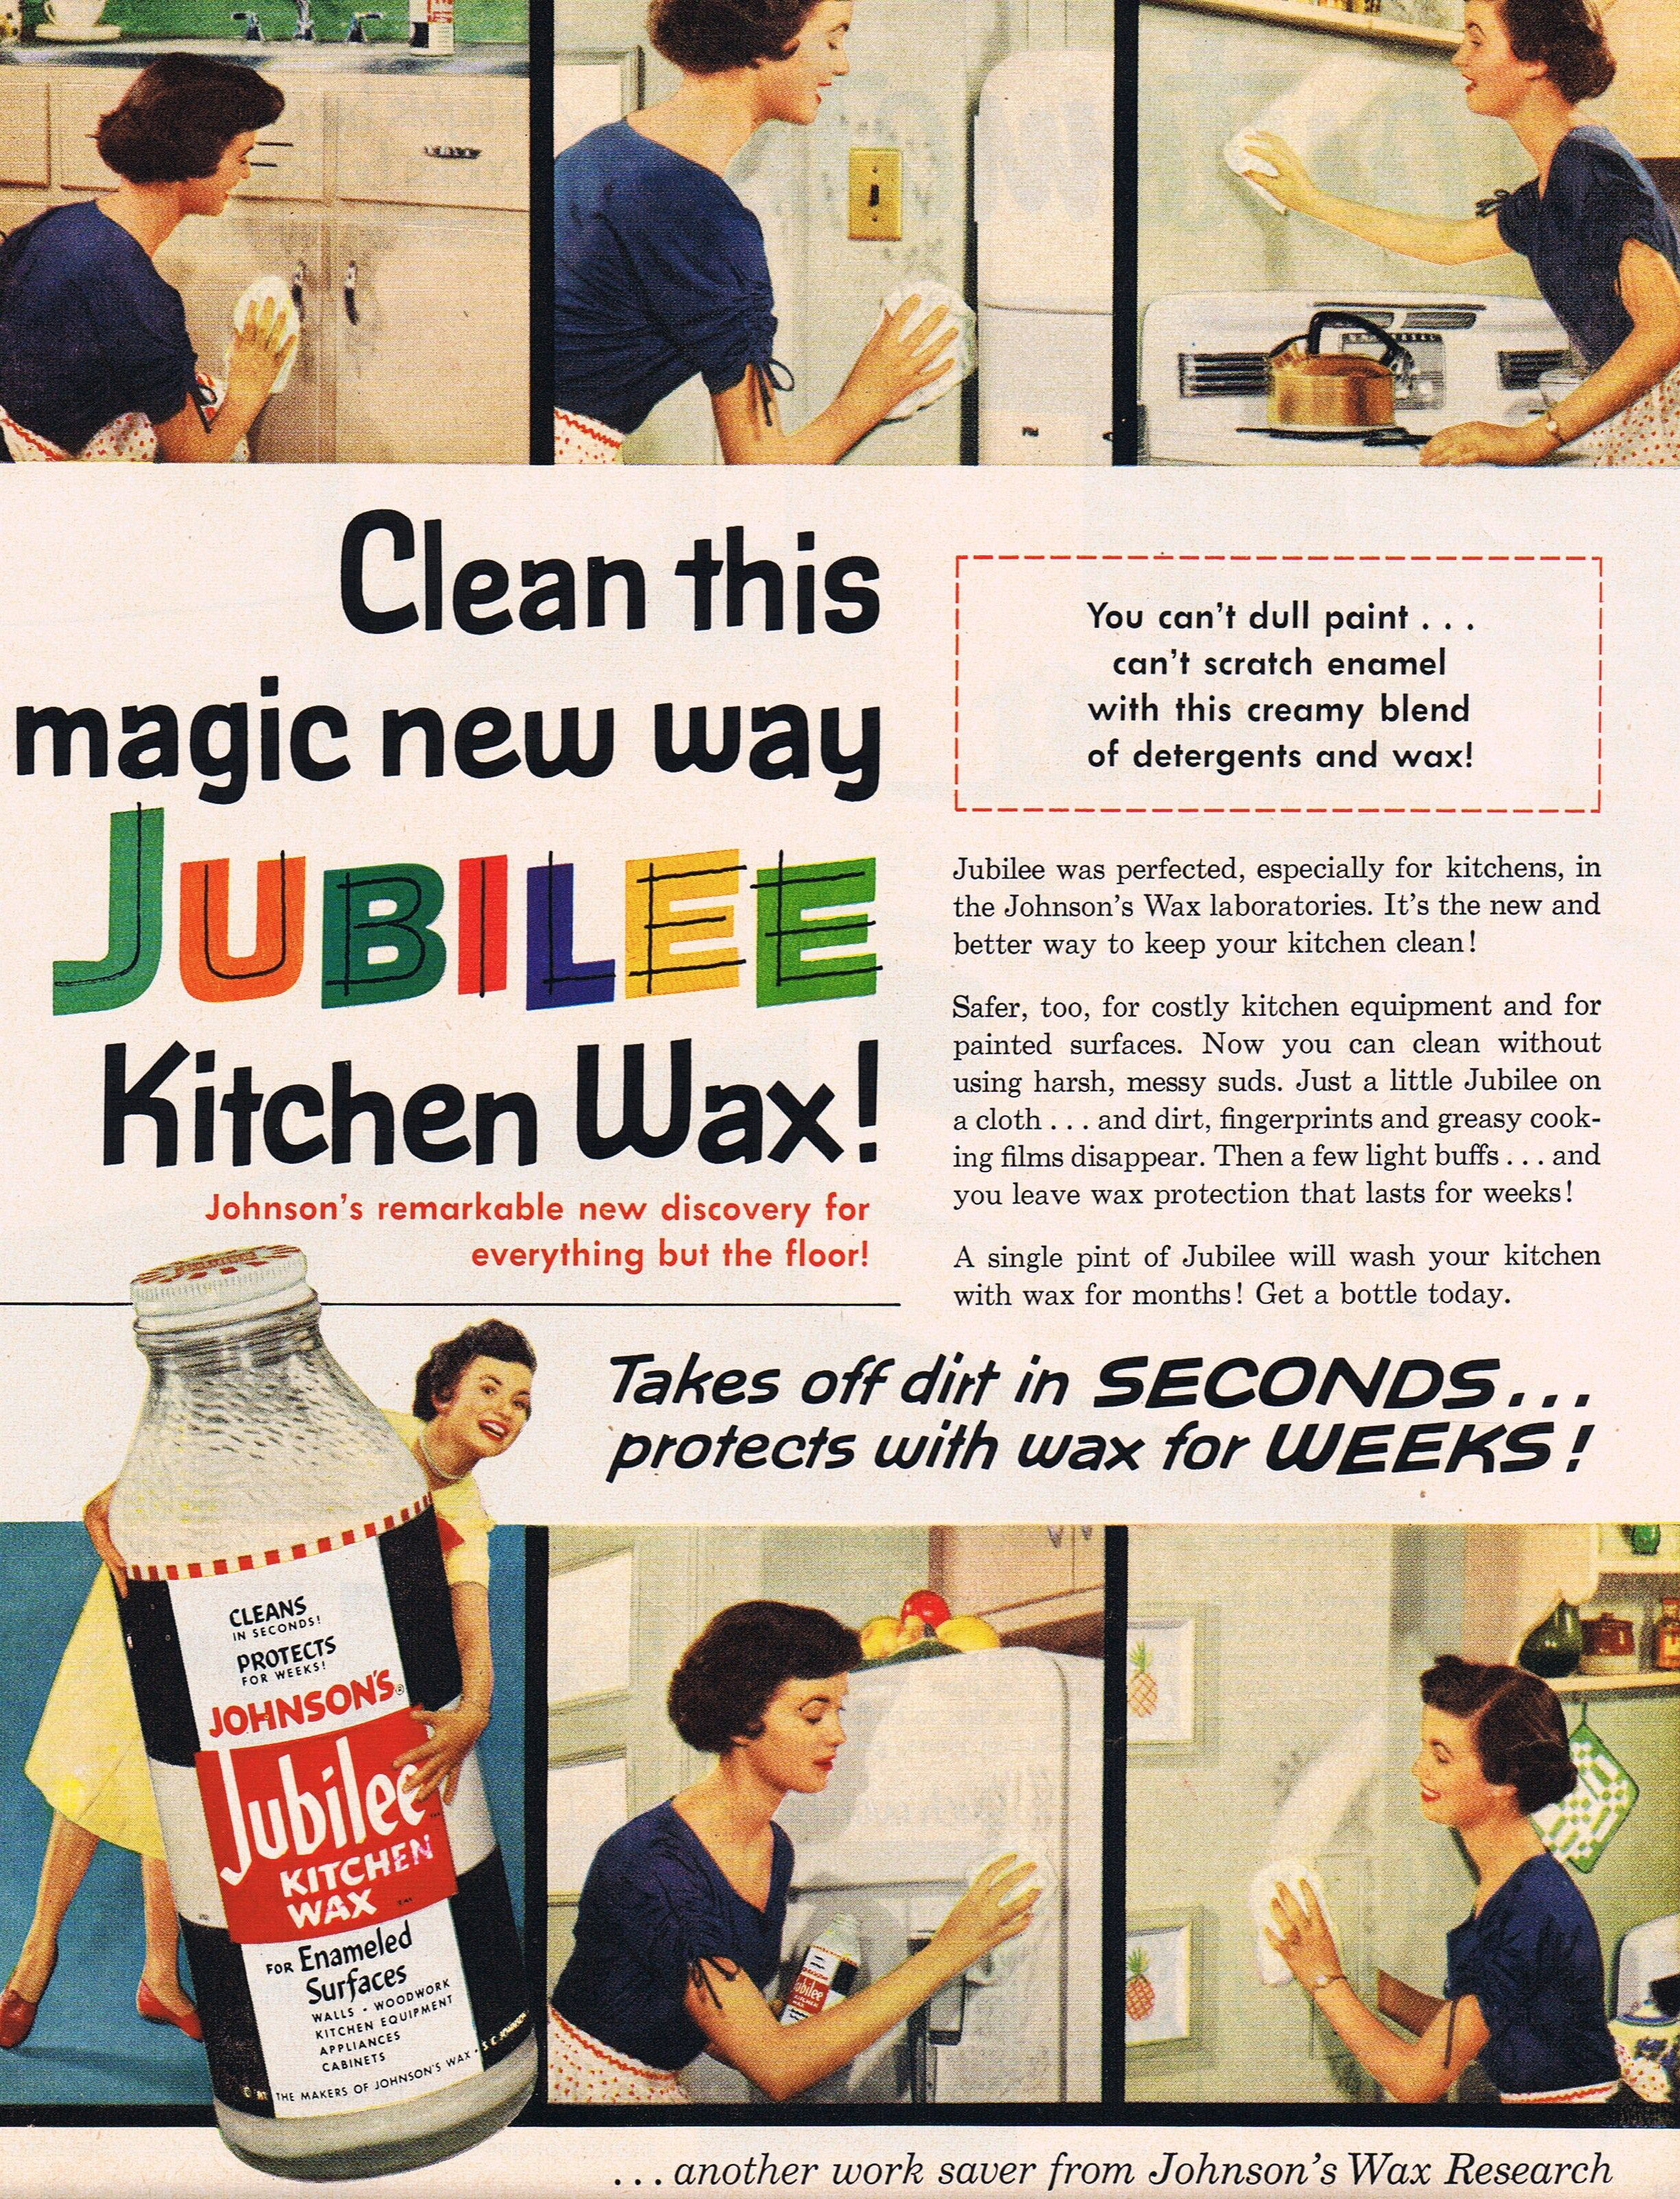 Merveilleux Jubilee Kitchen Wax Grandmother Had This Under The Kitchen Sink To Clean  The Refrigerator And Stove